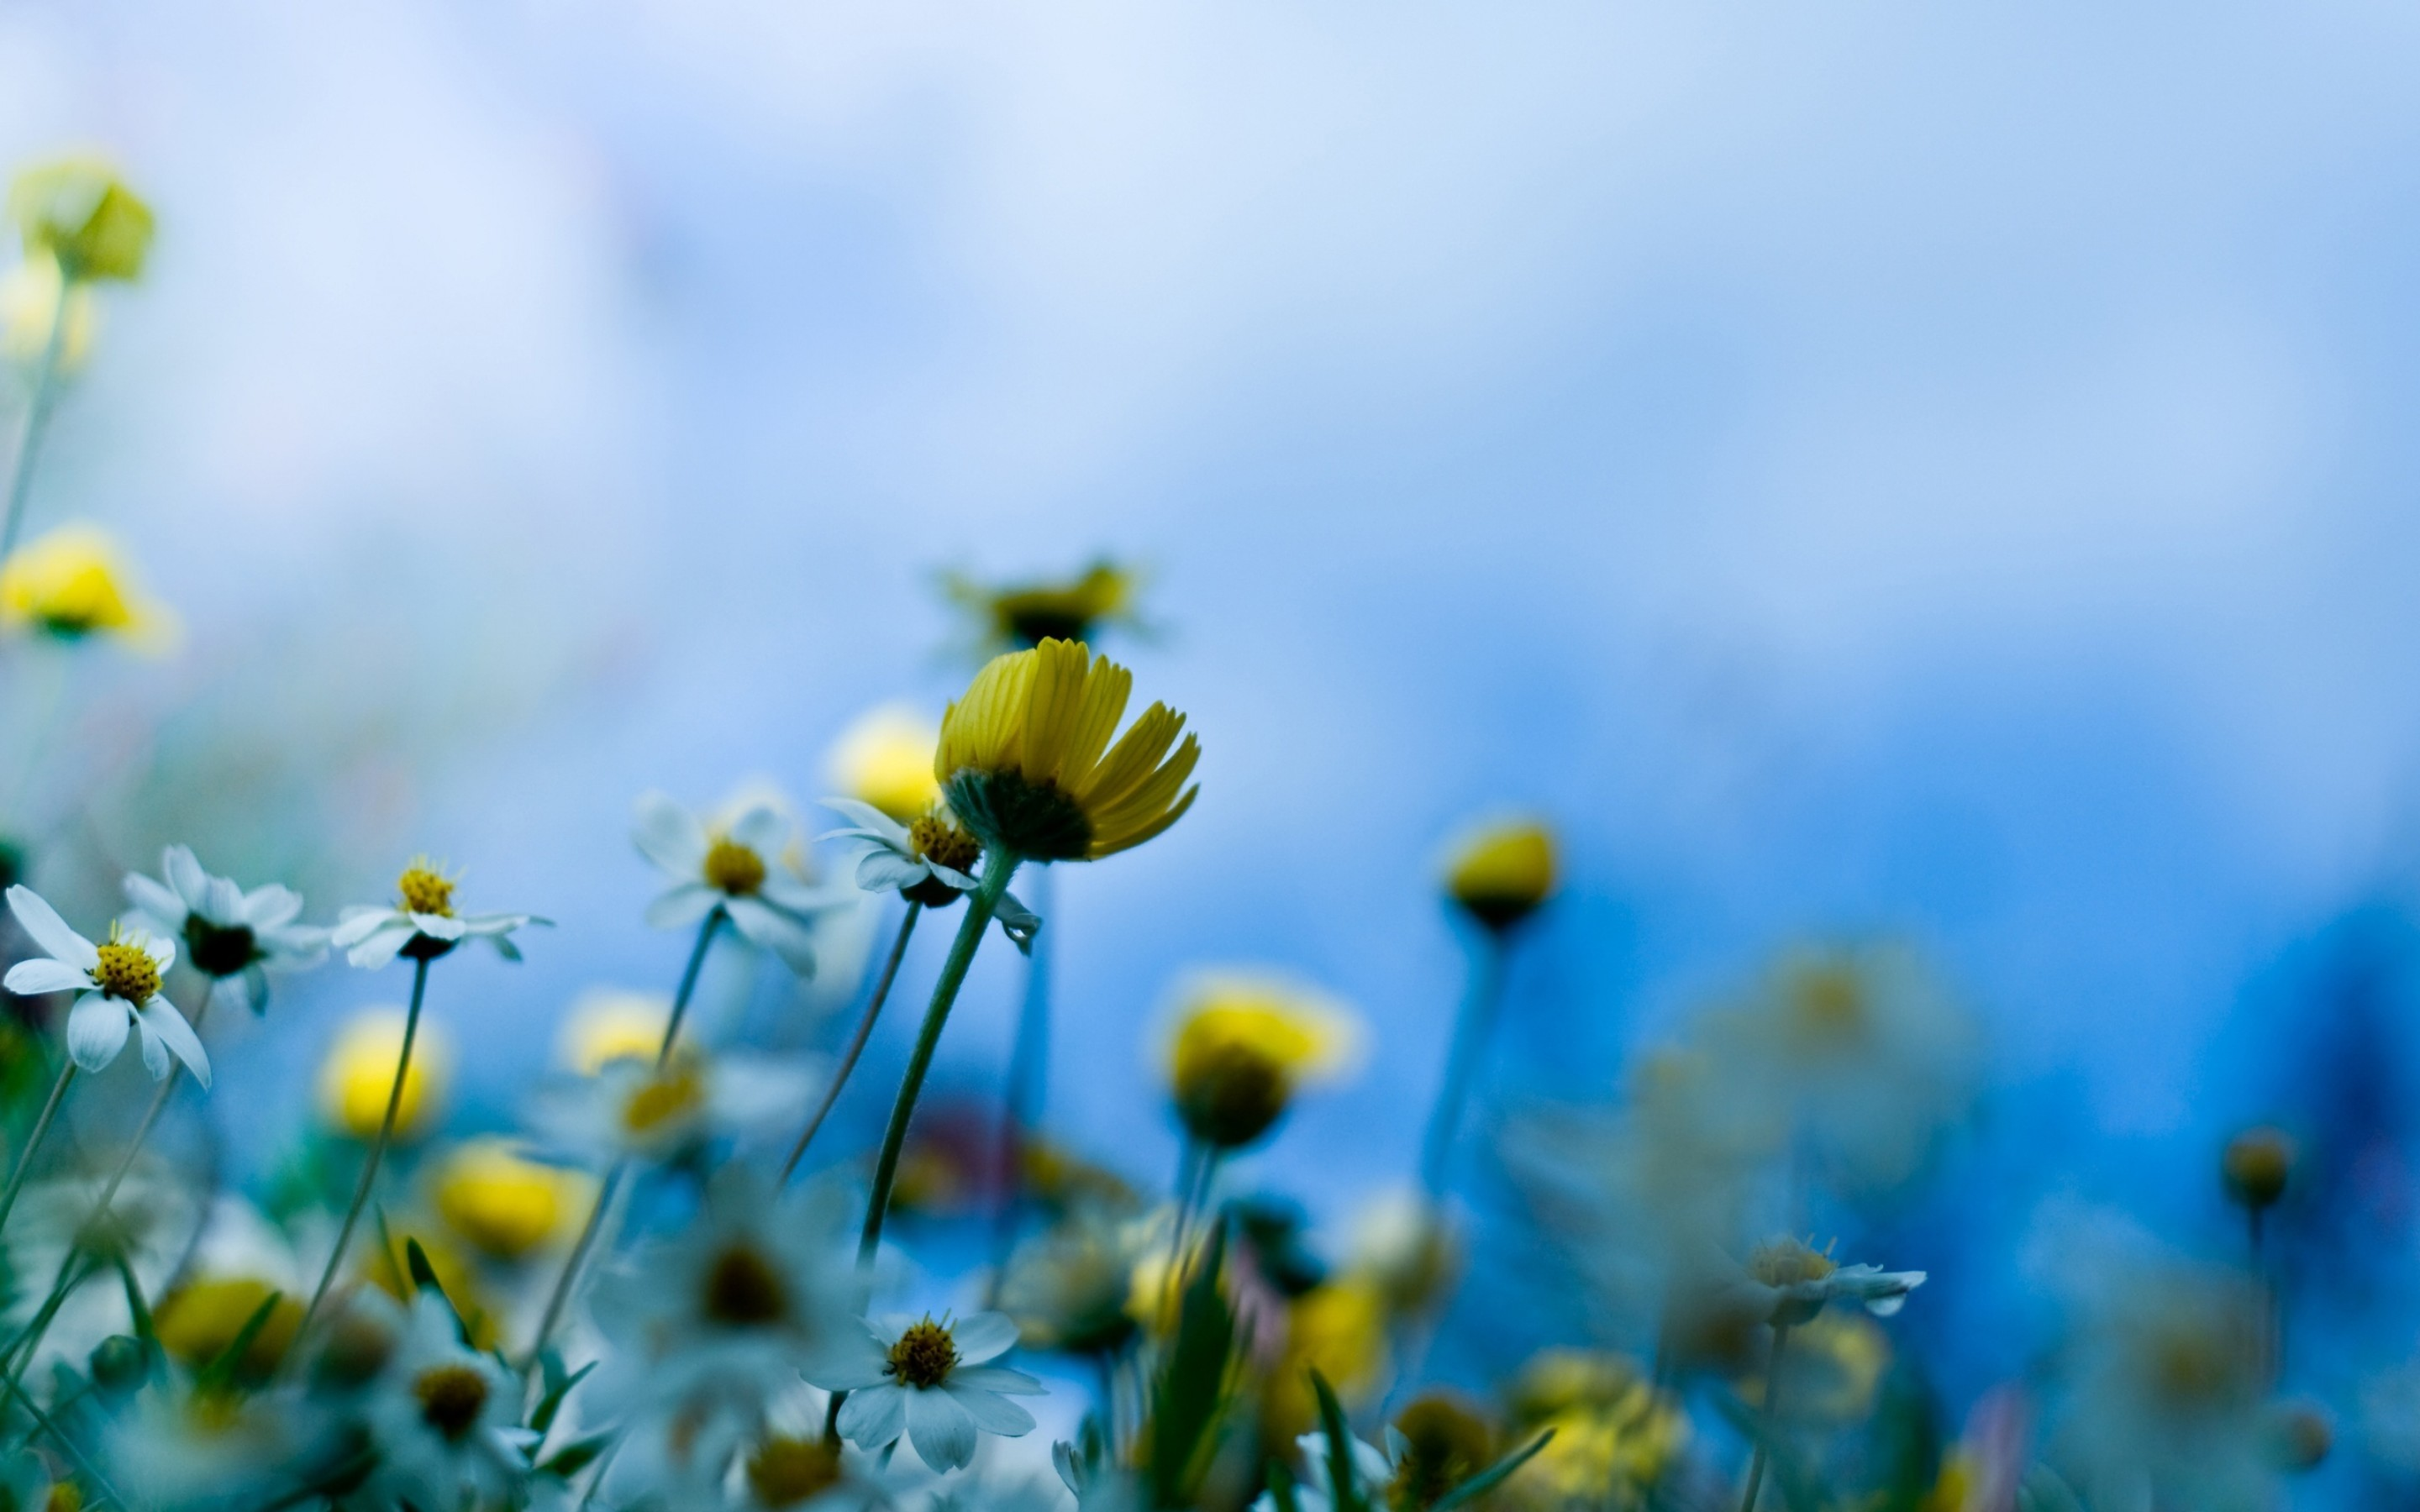 Best Spring Pictures - Wallpaper, High Definition, High ...